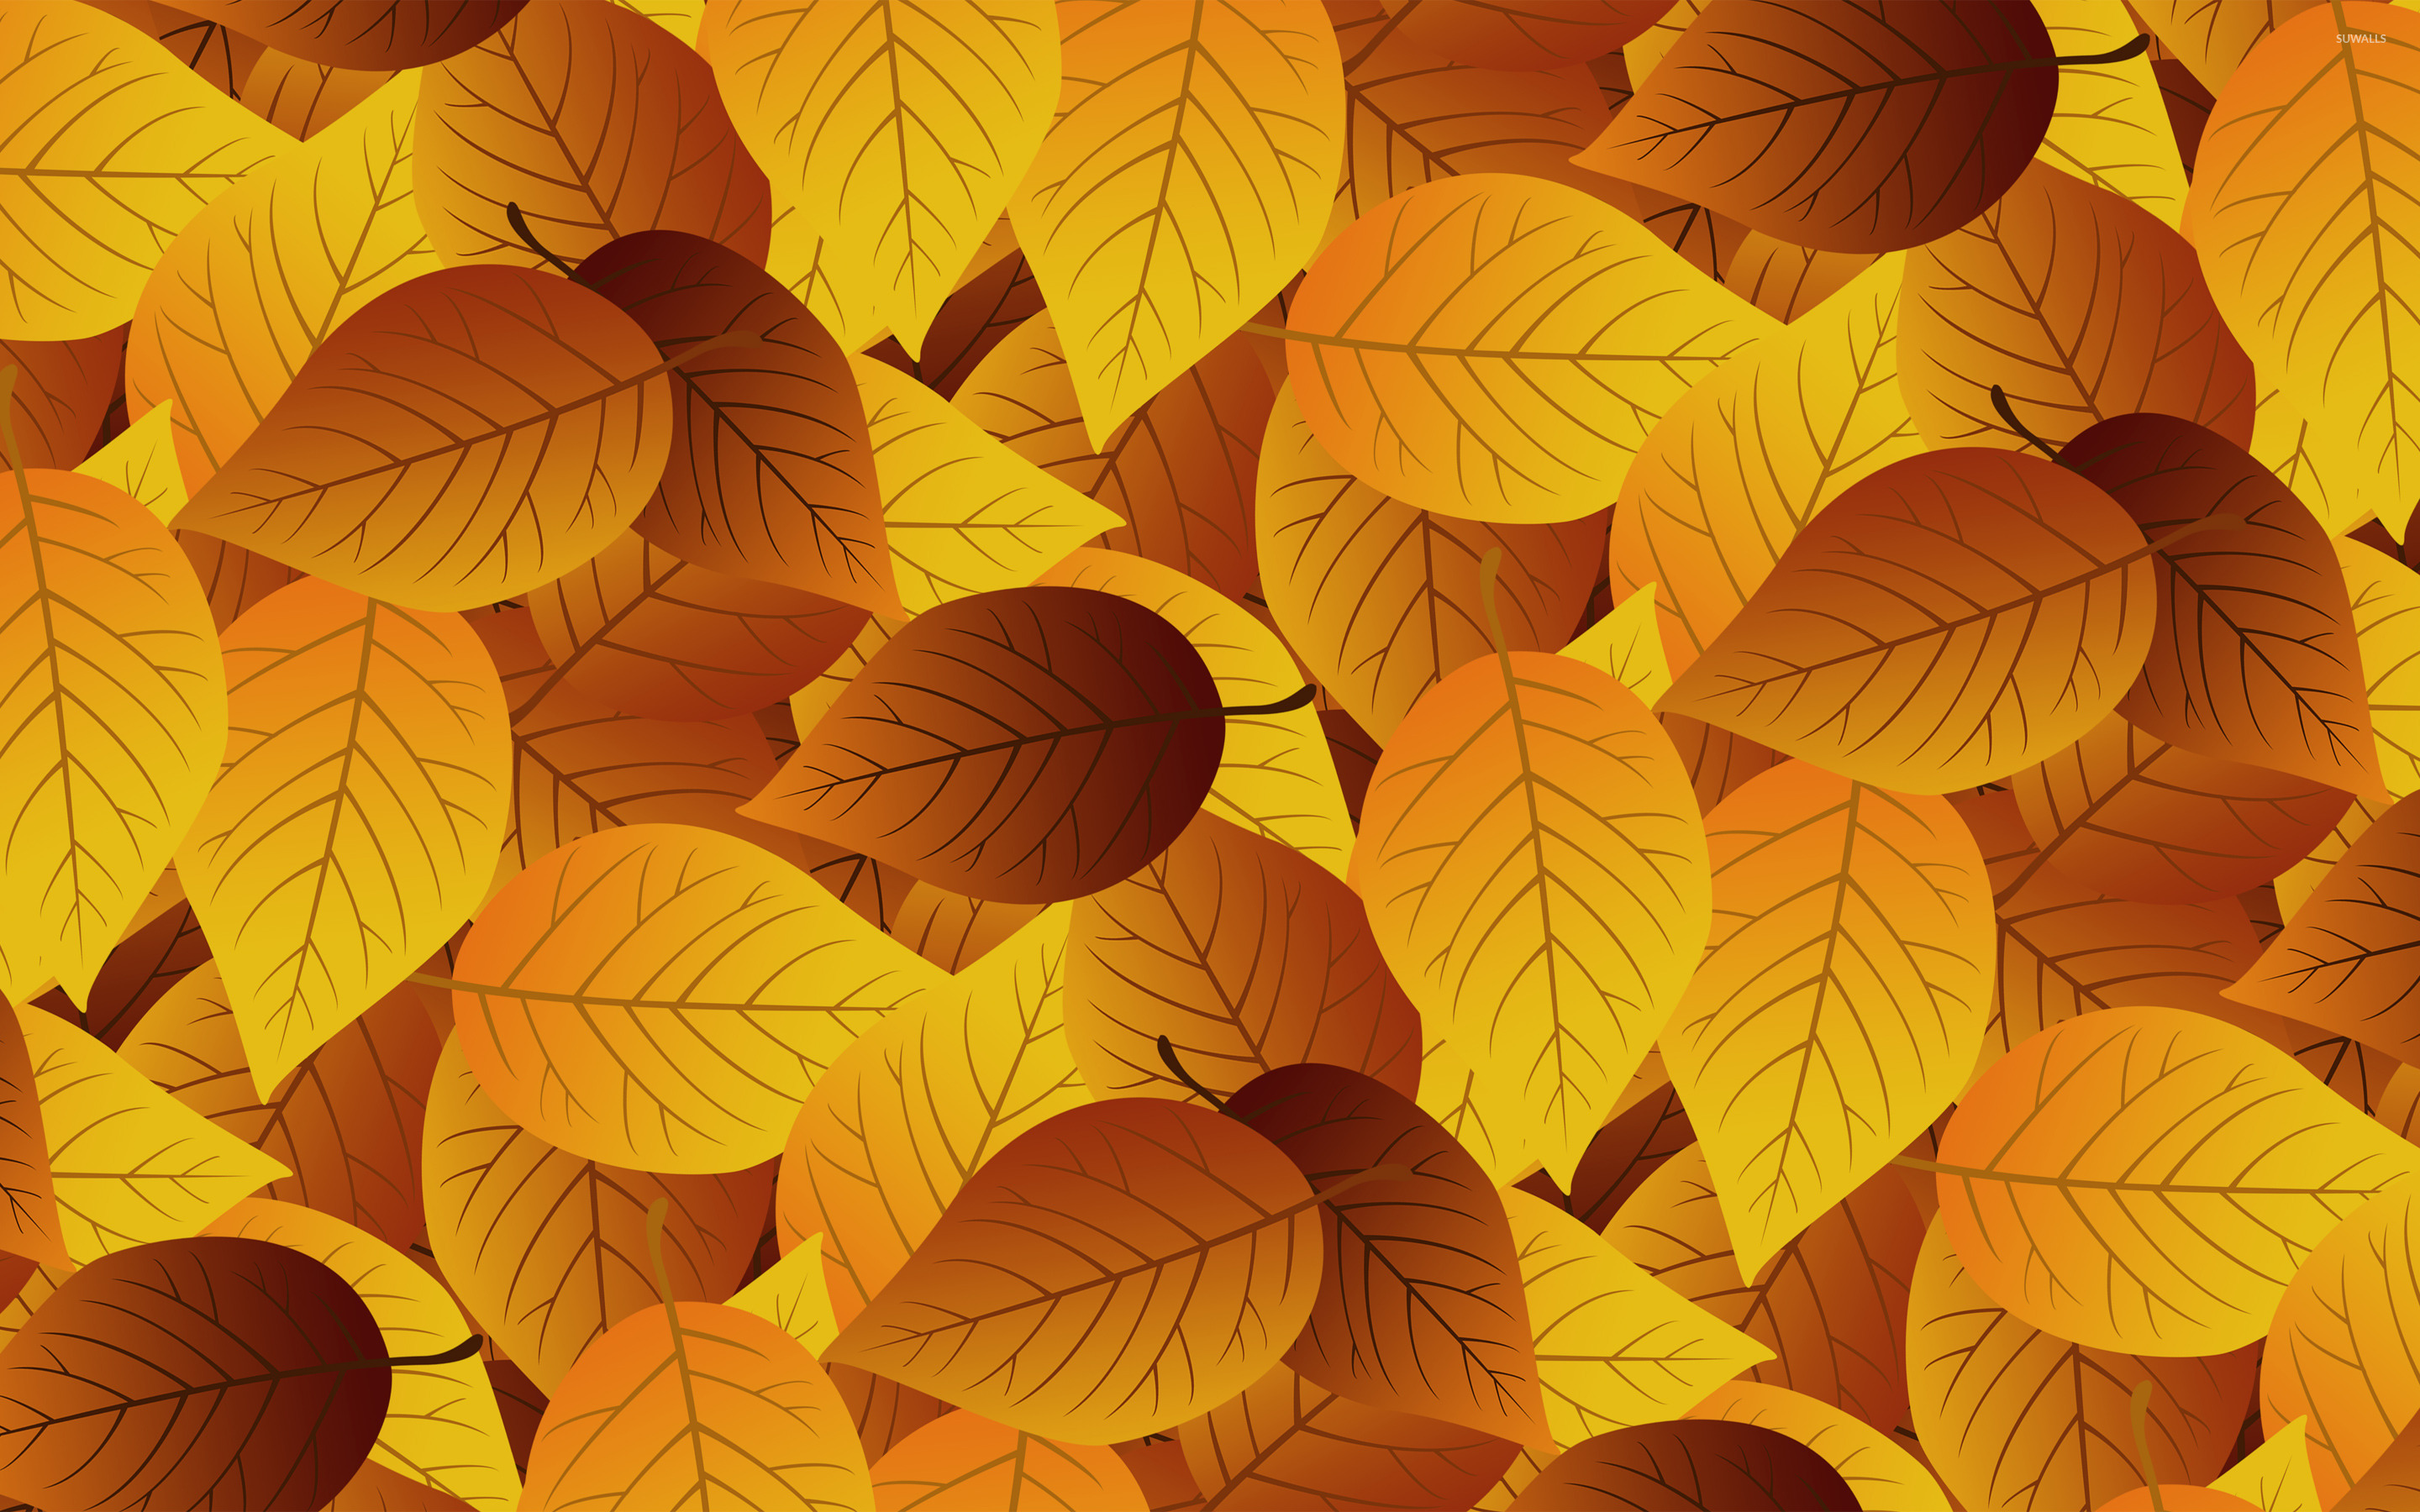 Autumn leaves [13] wallpaper Vector wallpapers